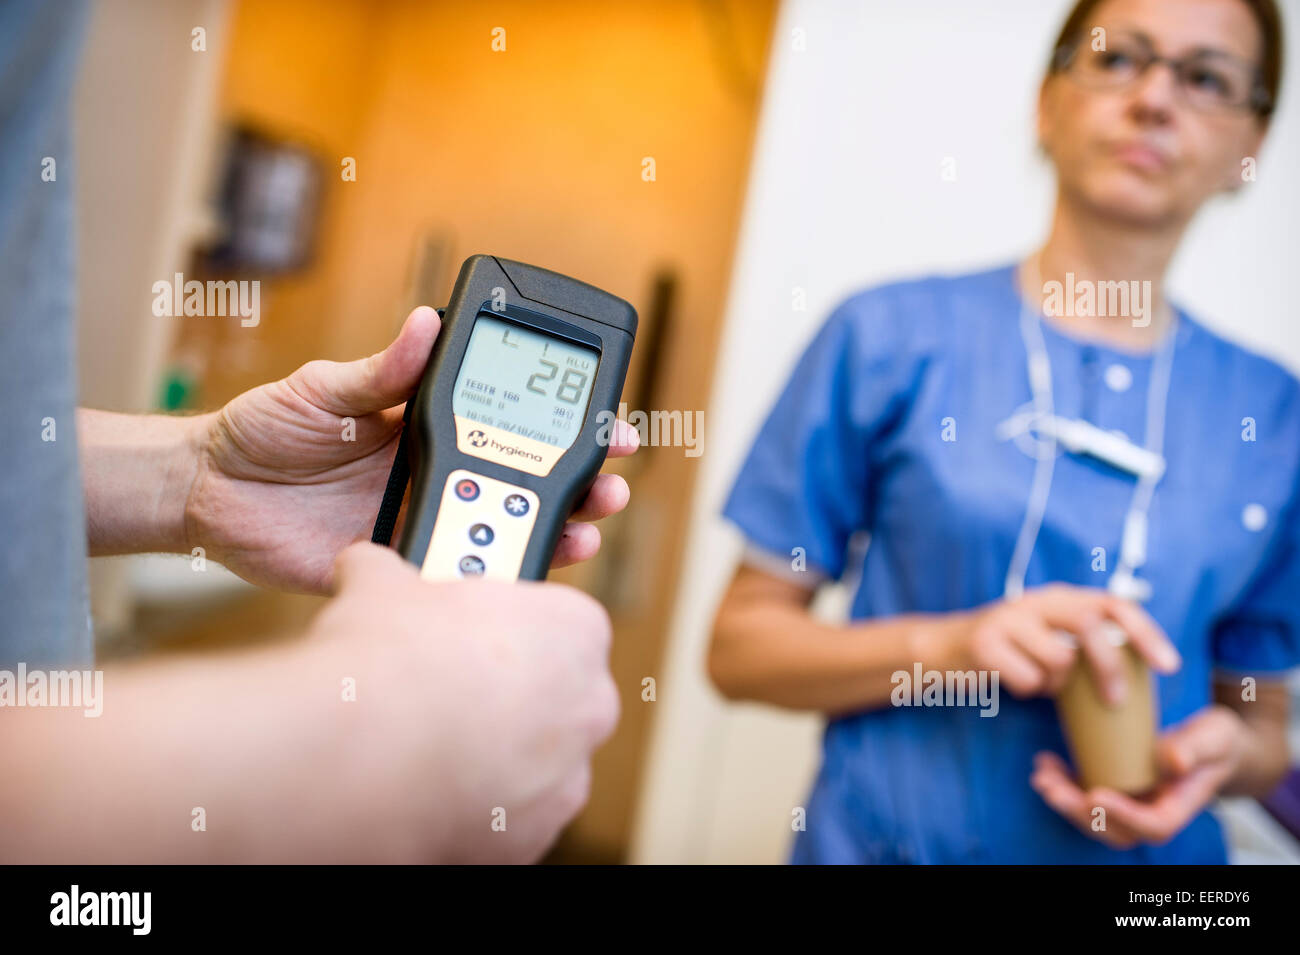 Controlling bacteria in hospital after cleaning - Stock Image